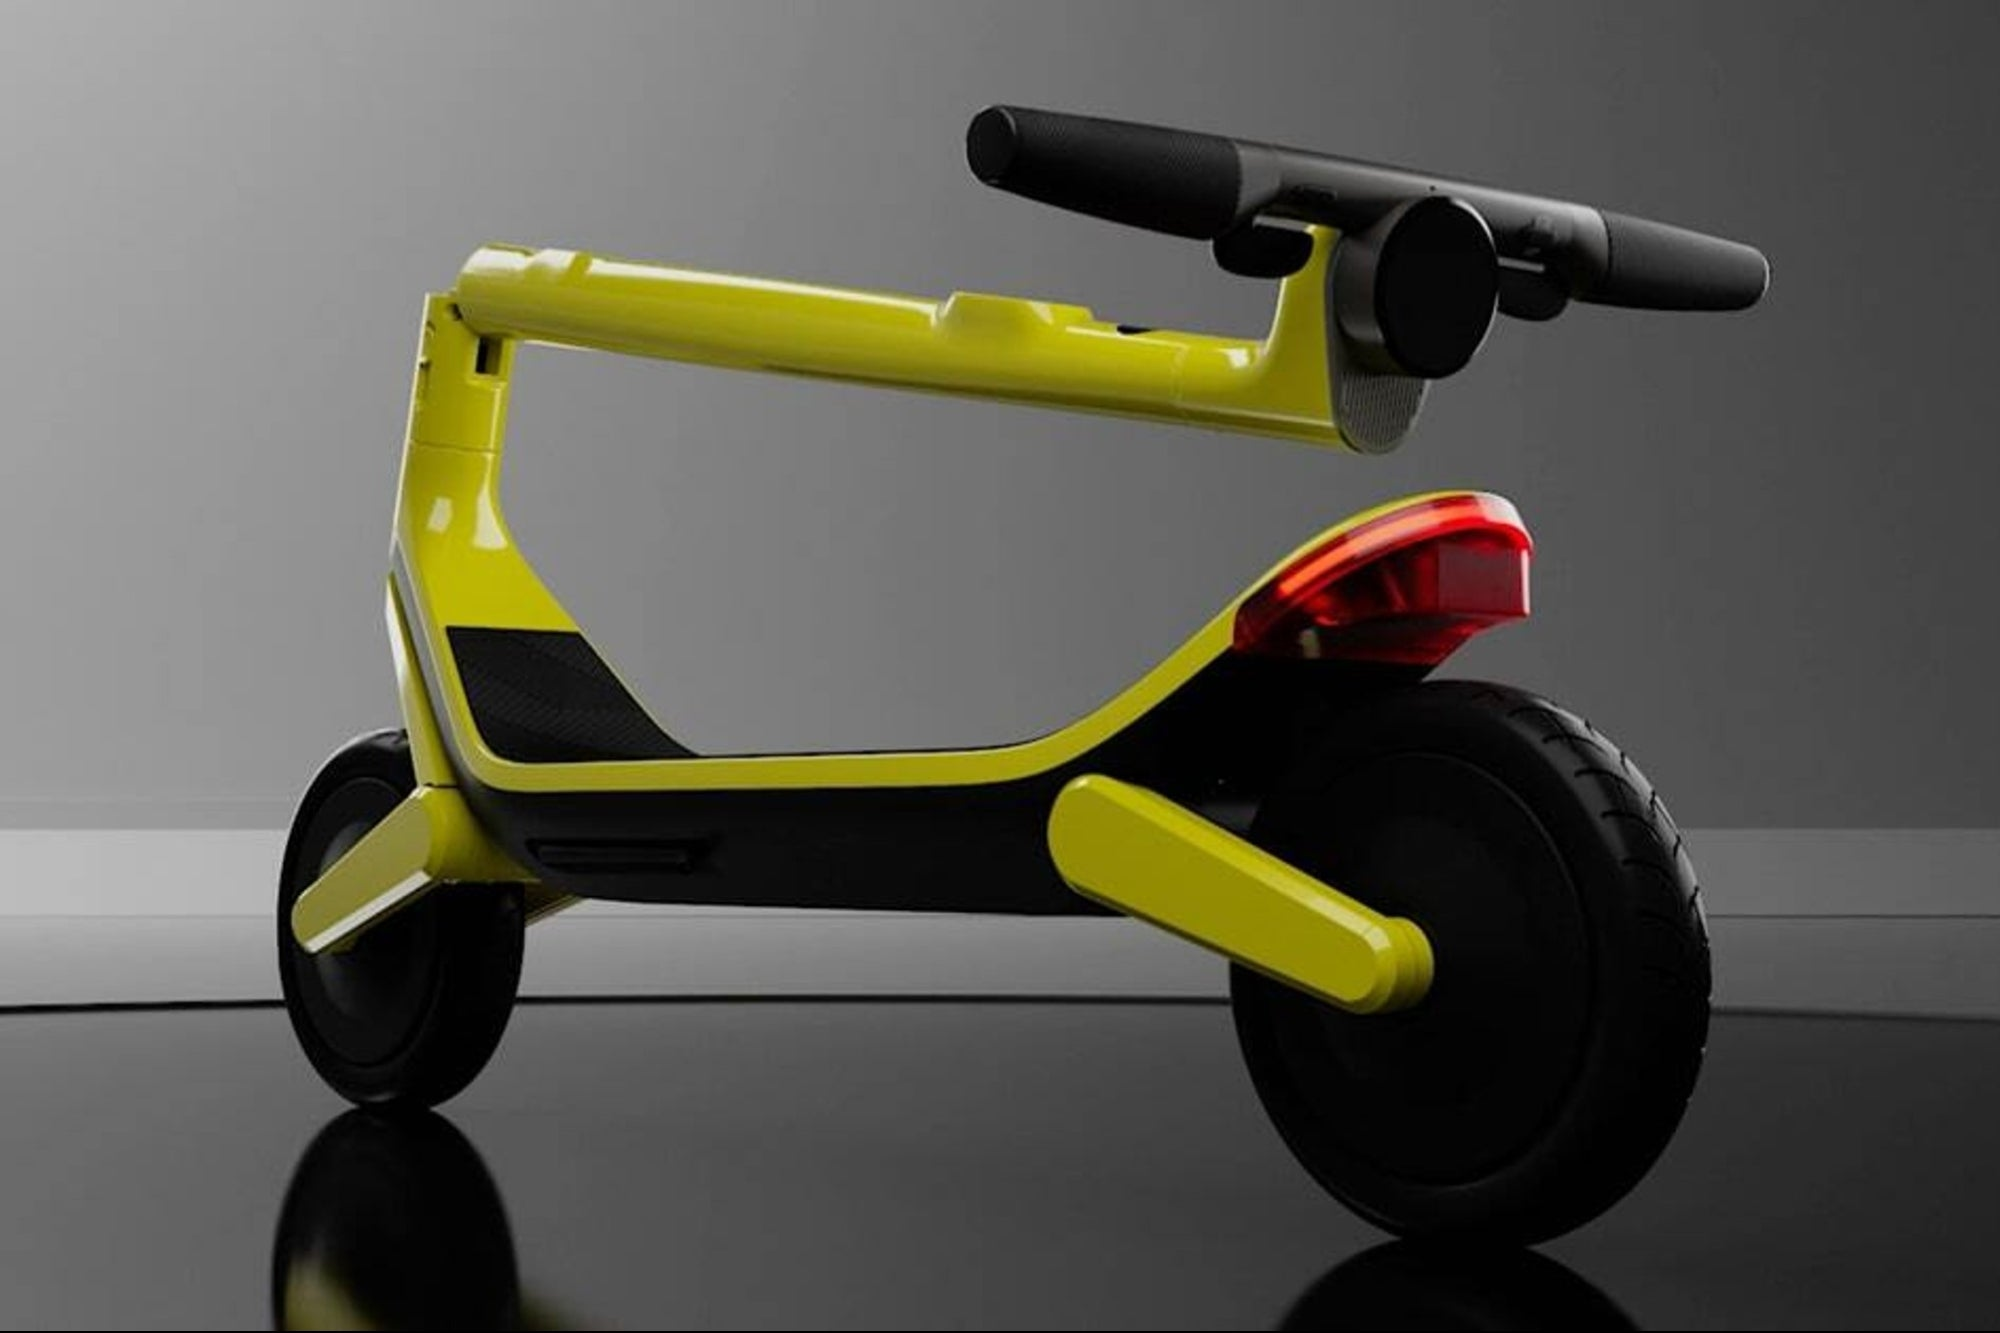 They launch an electric scooter that plays music and avoids obstacles